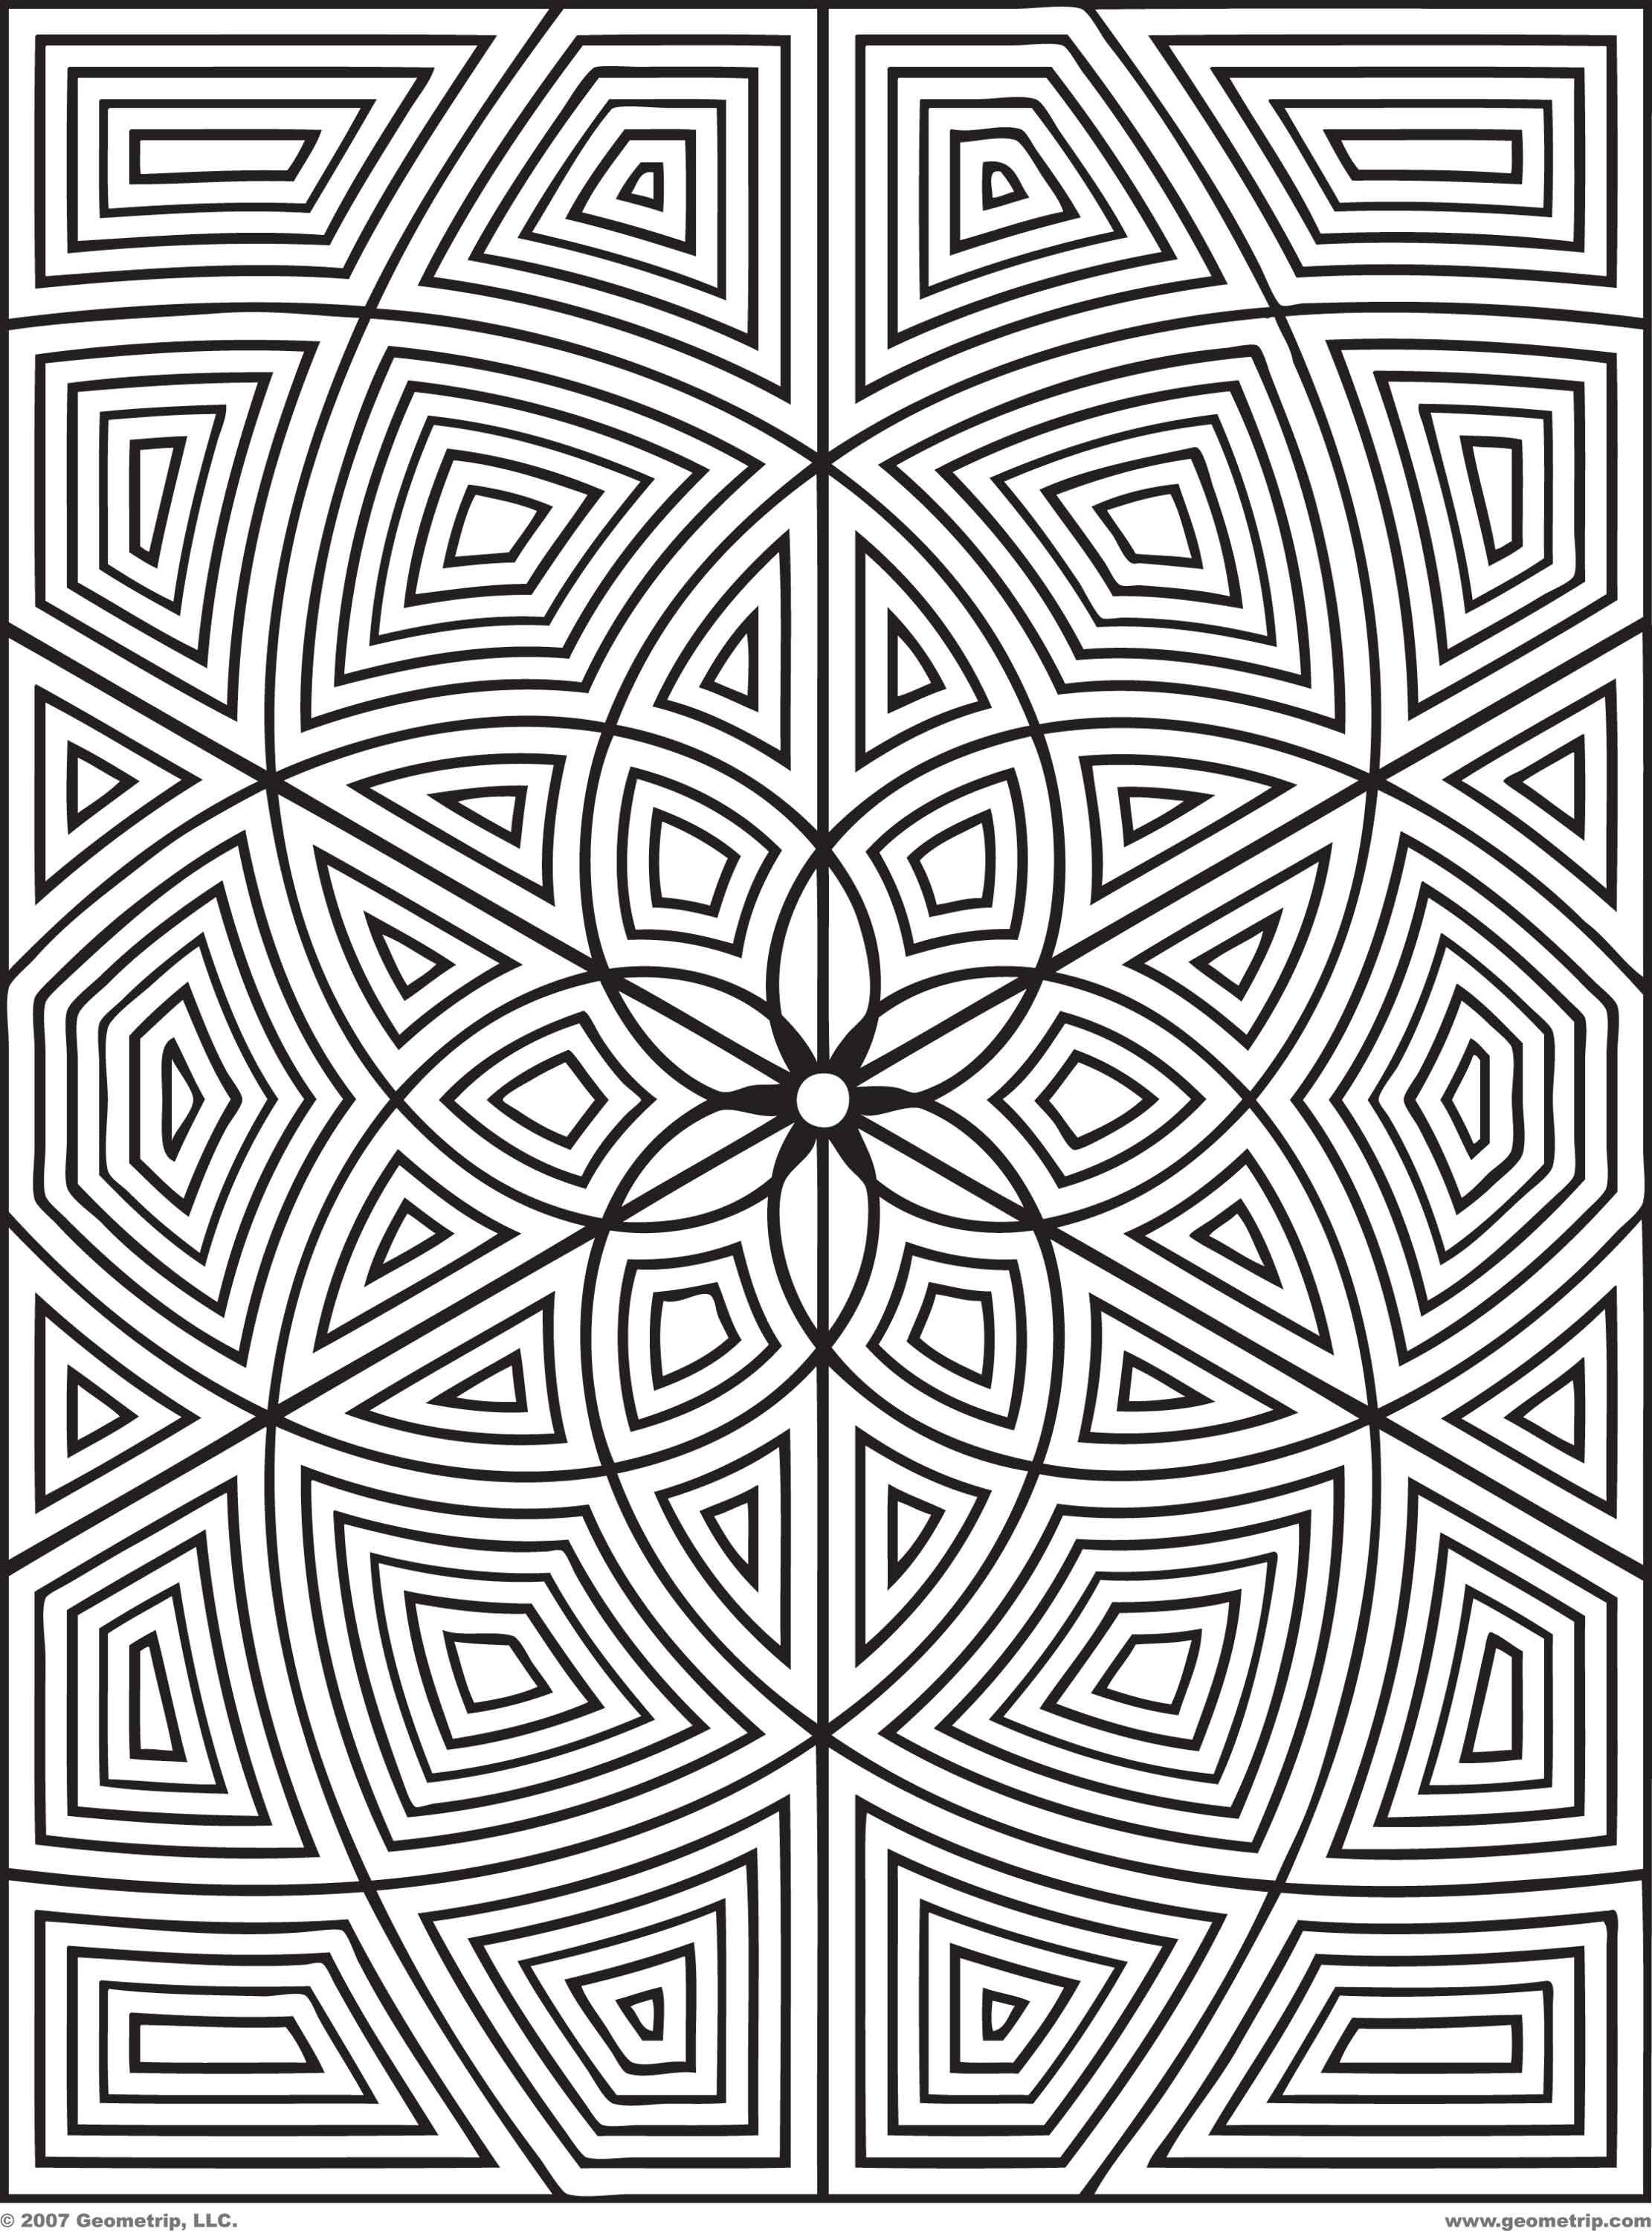 Free Geometric Design Coloring Pages Images Crazy Gallery Geometry New Geometric Coloring Pages Pattern Coloring Pages Mandala Coloring Pages